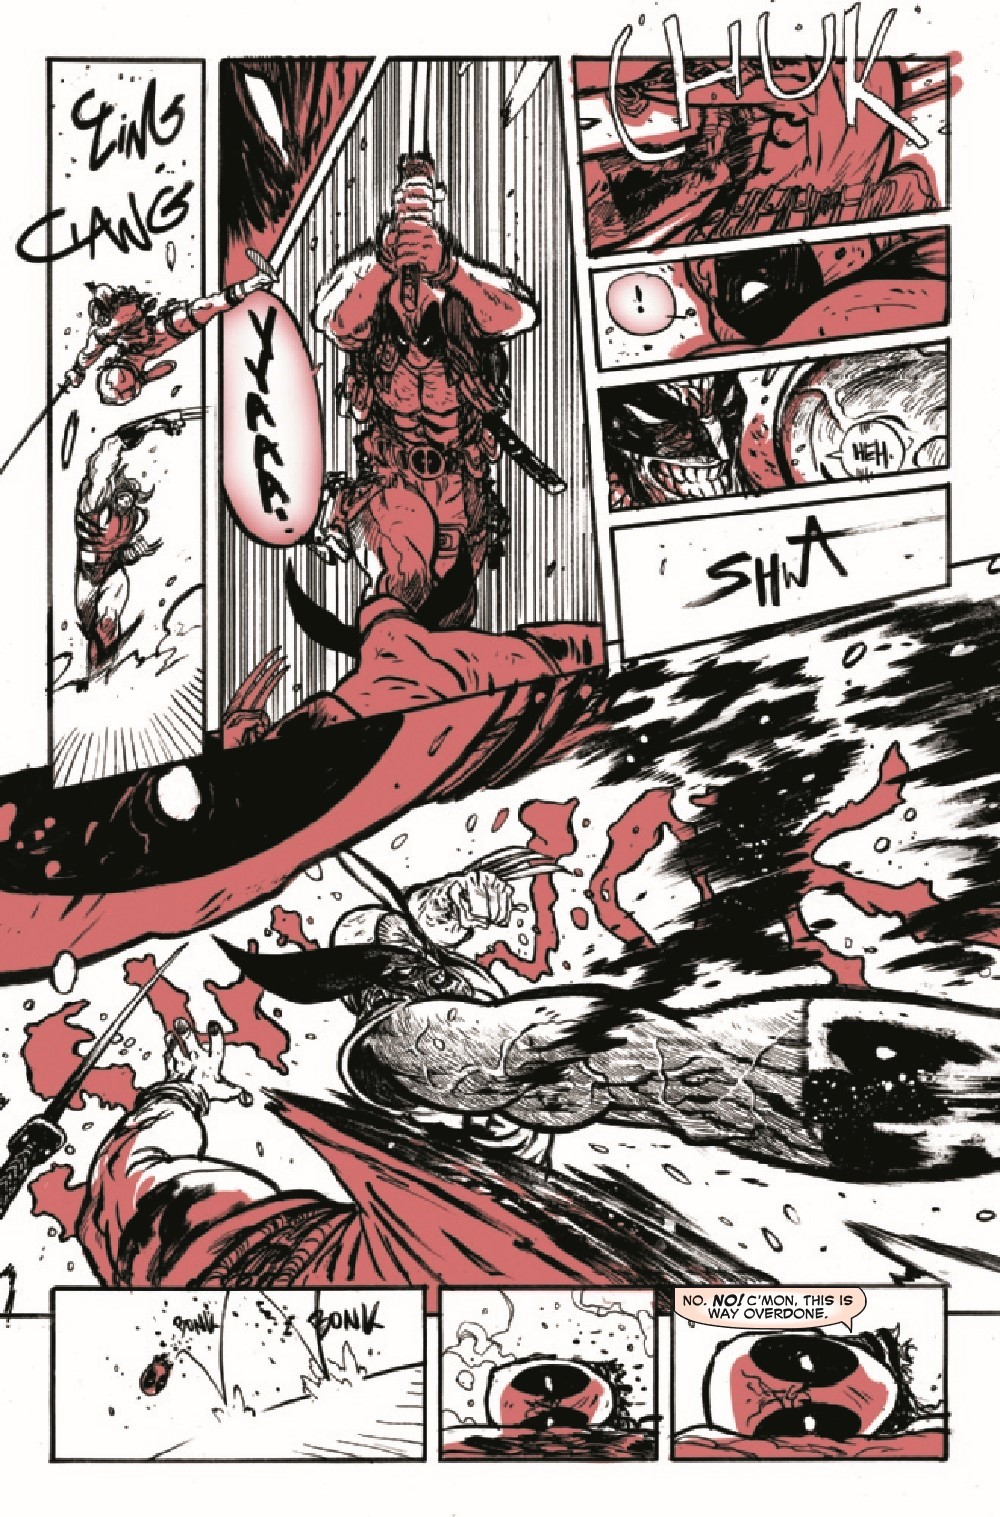 DPOOLBLKWHBL2021002_Preview-6 ComicList Previews: DEADPOOL BLACK WHITE AND BLOOD #2 (OF 4)